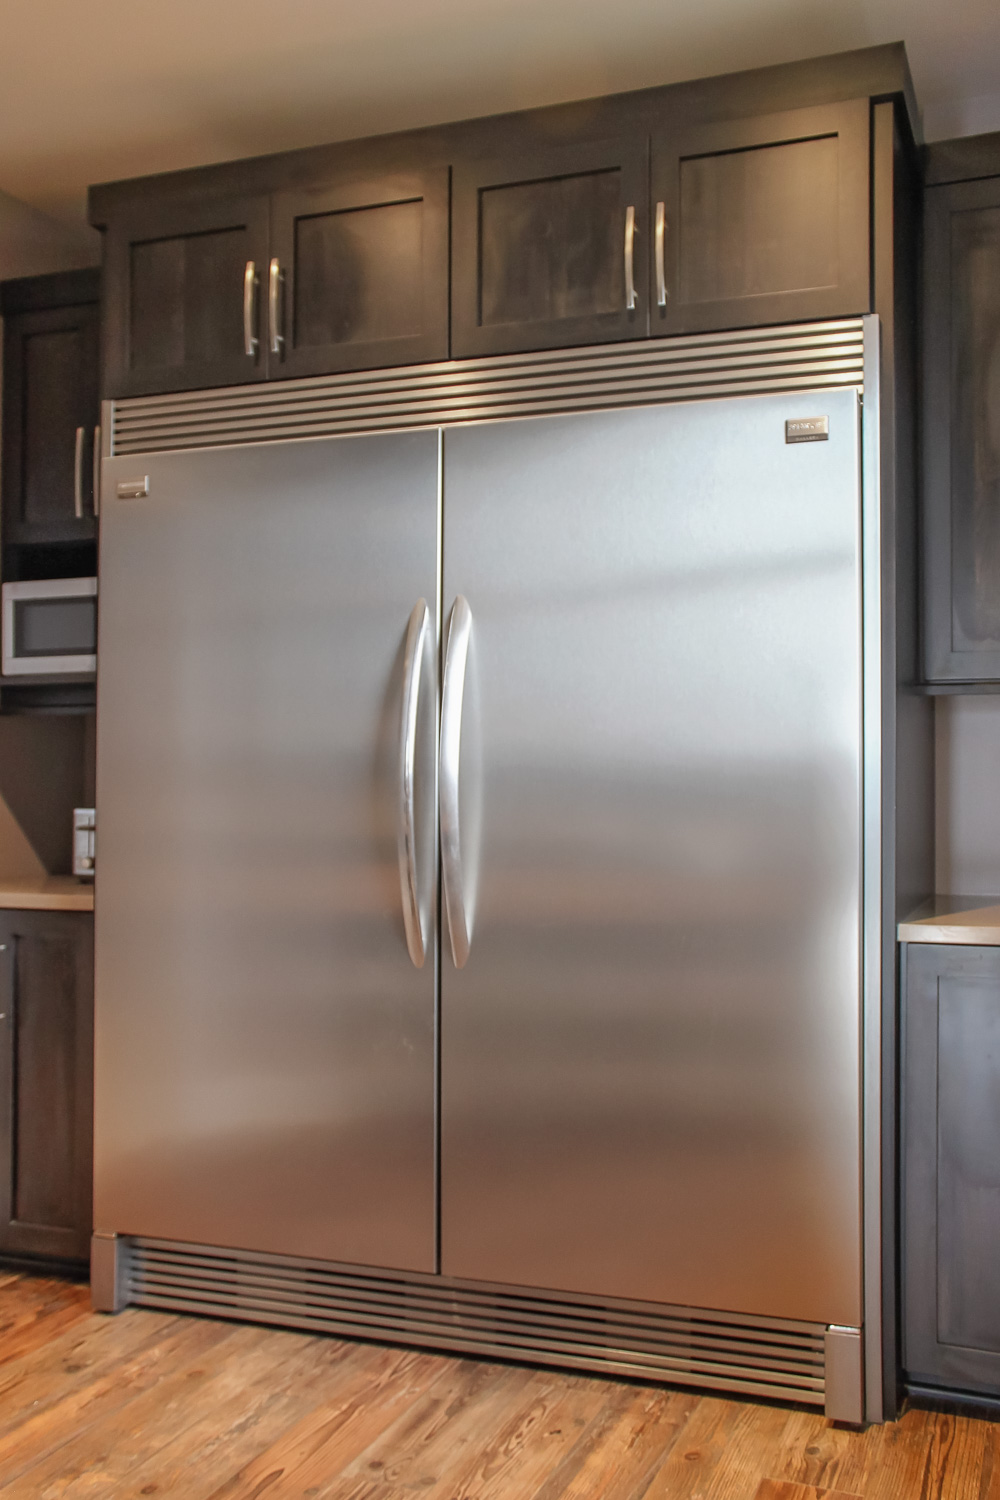 this professional grade refrigerator and freezer combo was placed in the pantry. the kitchen design remains clean, and the pantry also contains a micorwave and countertop space for ease of use.